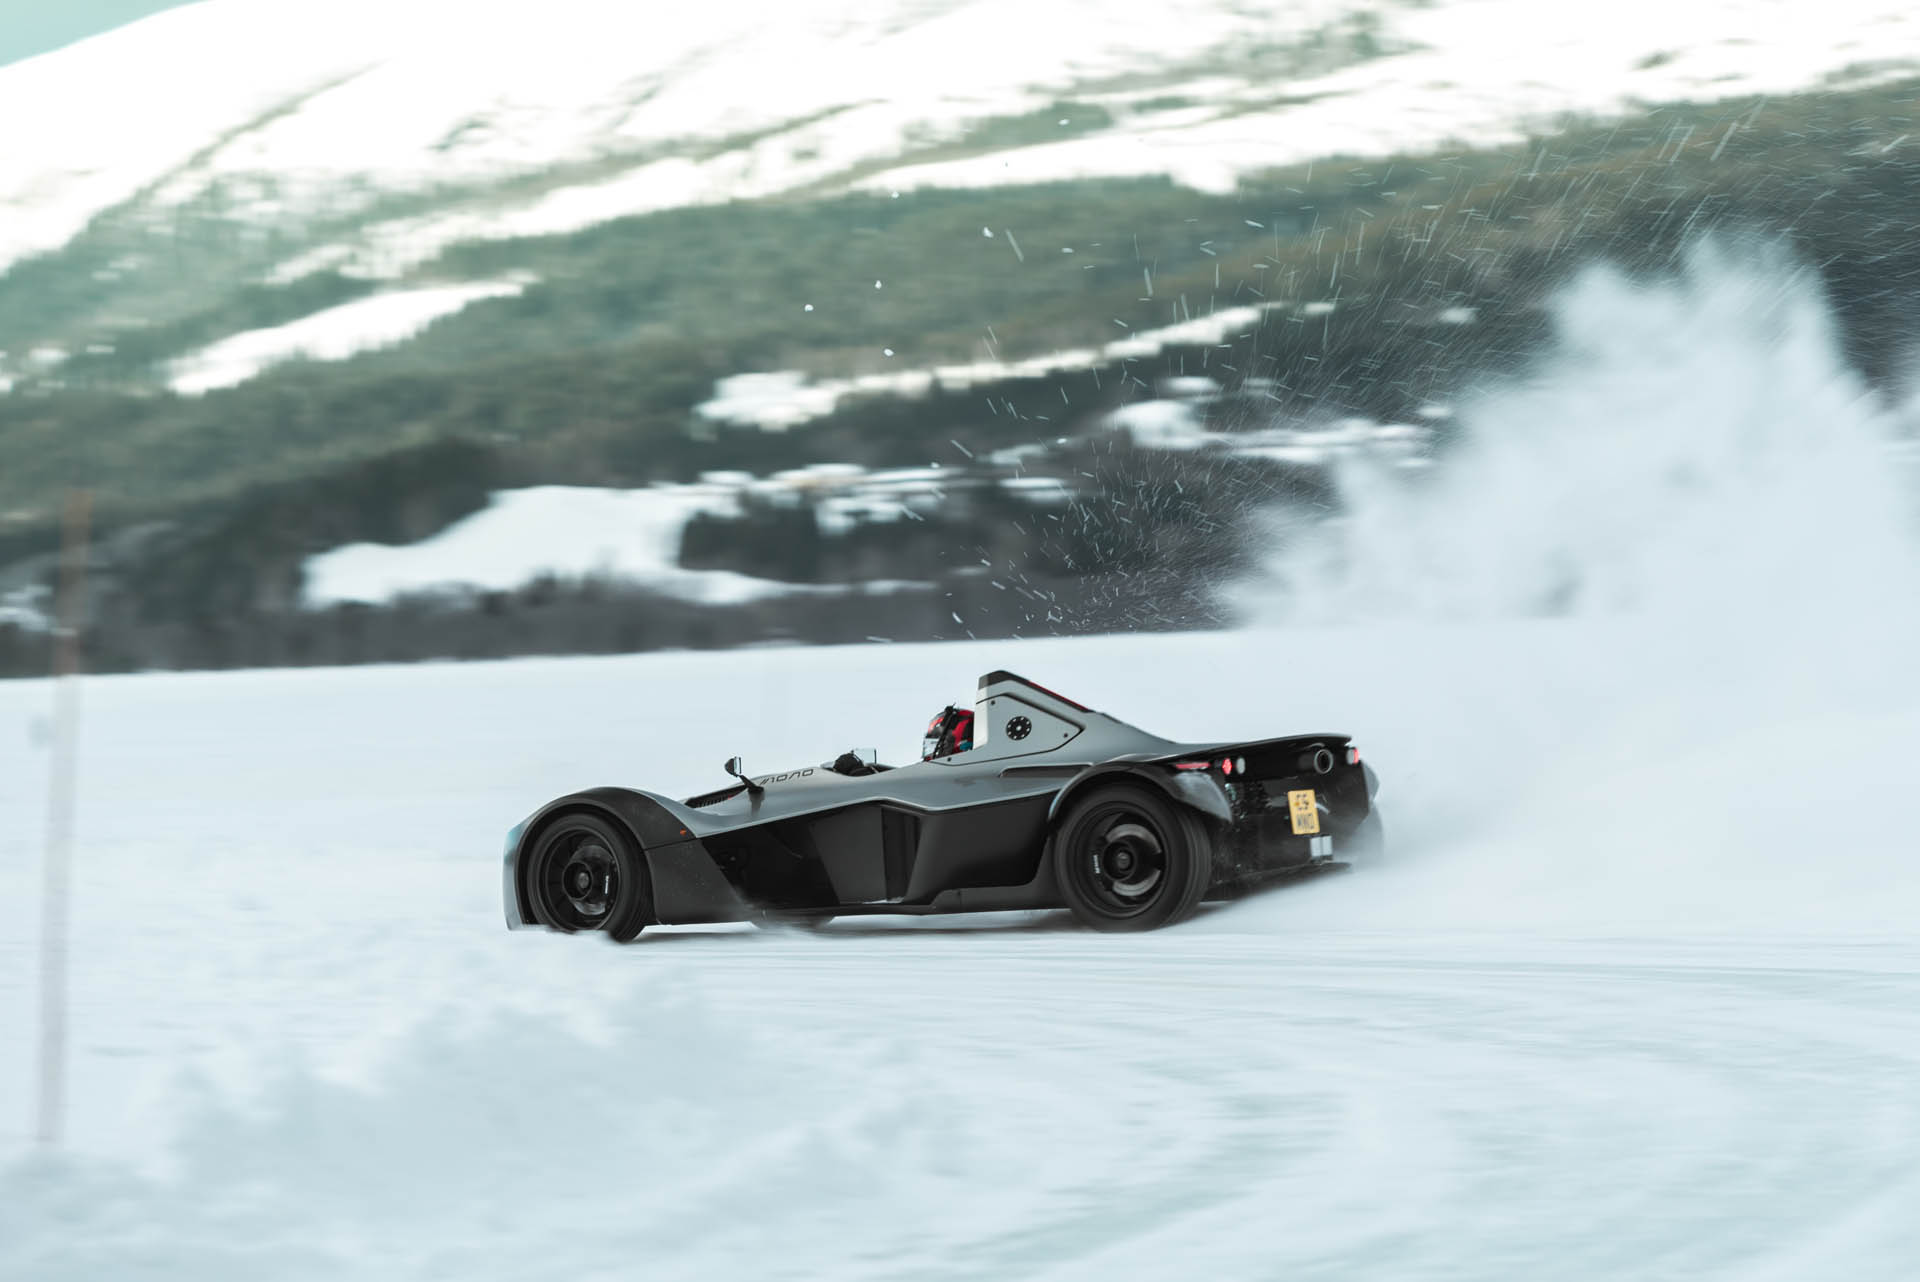 BAC_Mono_Ice_Driving_Experience_2018_0010